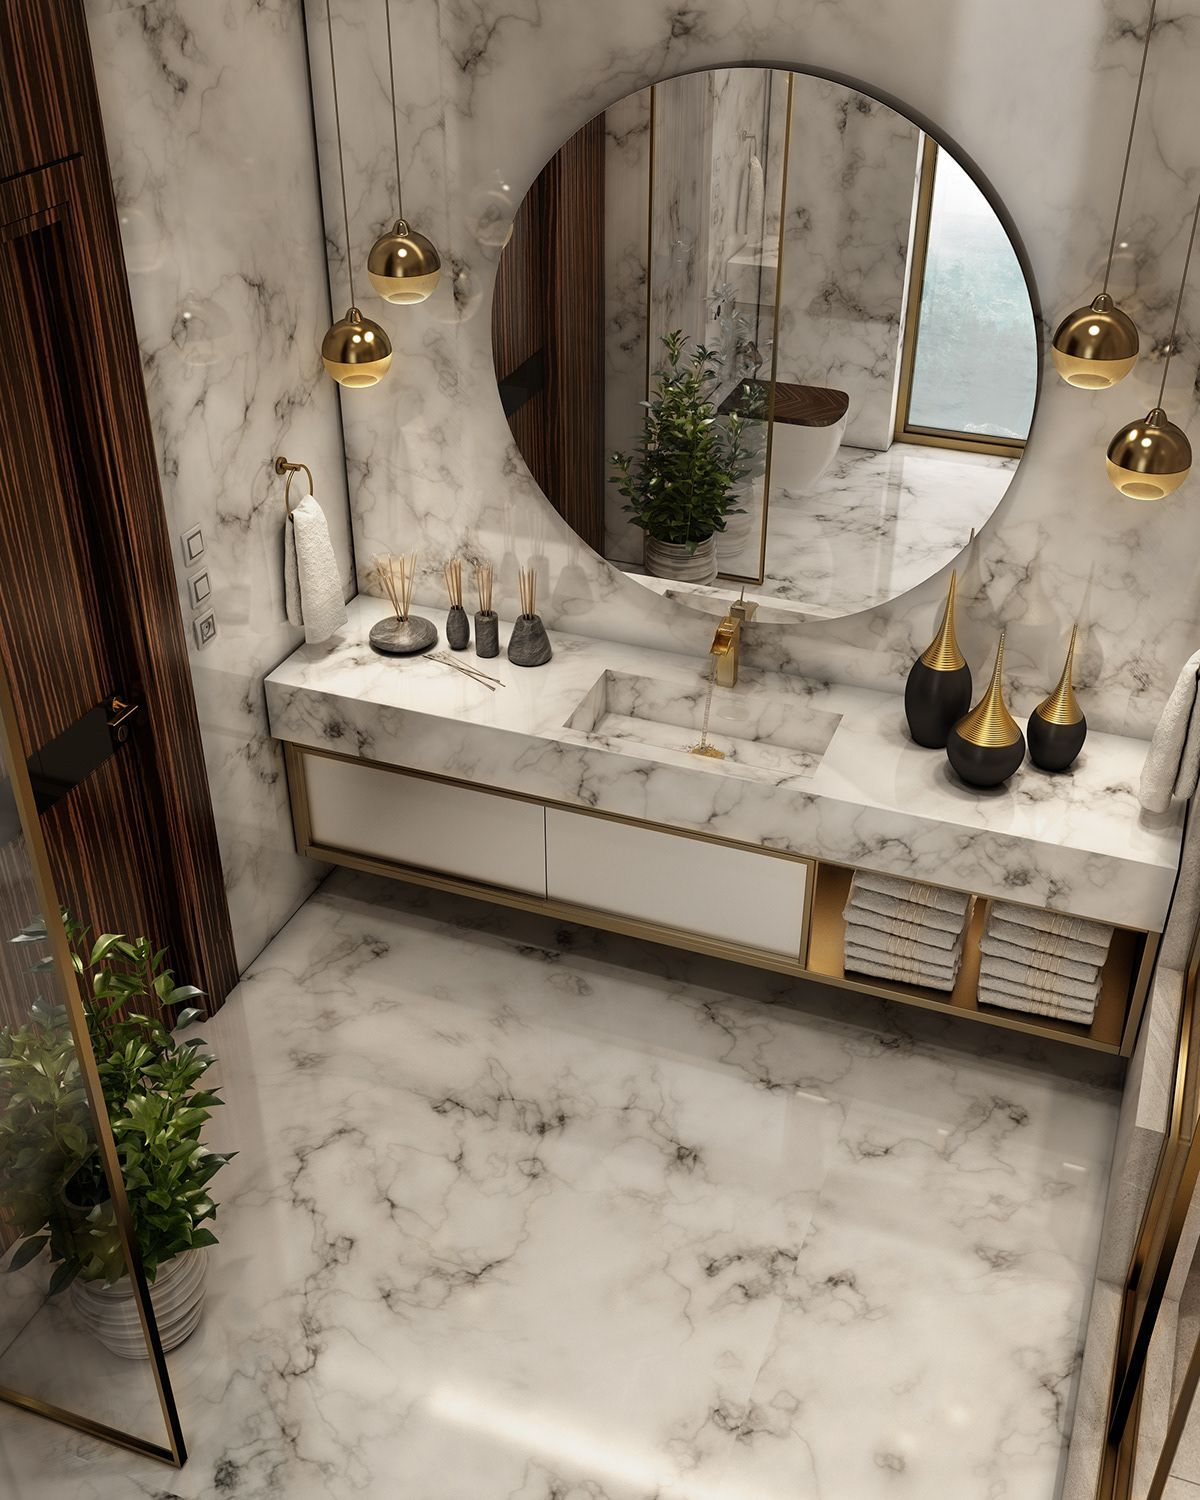 Muebles La Negrilla Sevilla Luxurious Bathroom On Behance Luxurybathroomwashstands Habitación